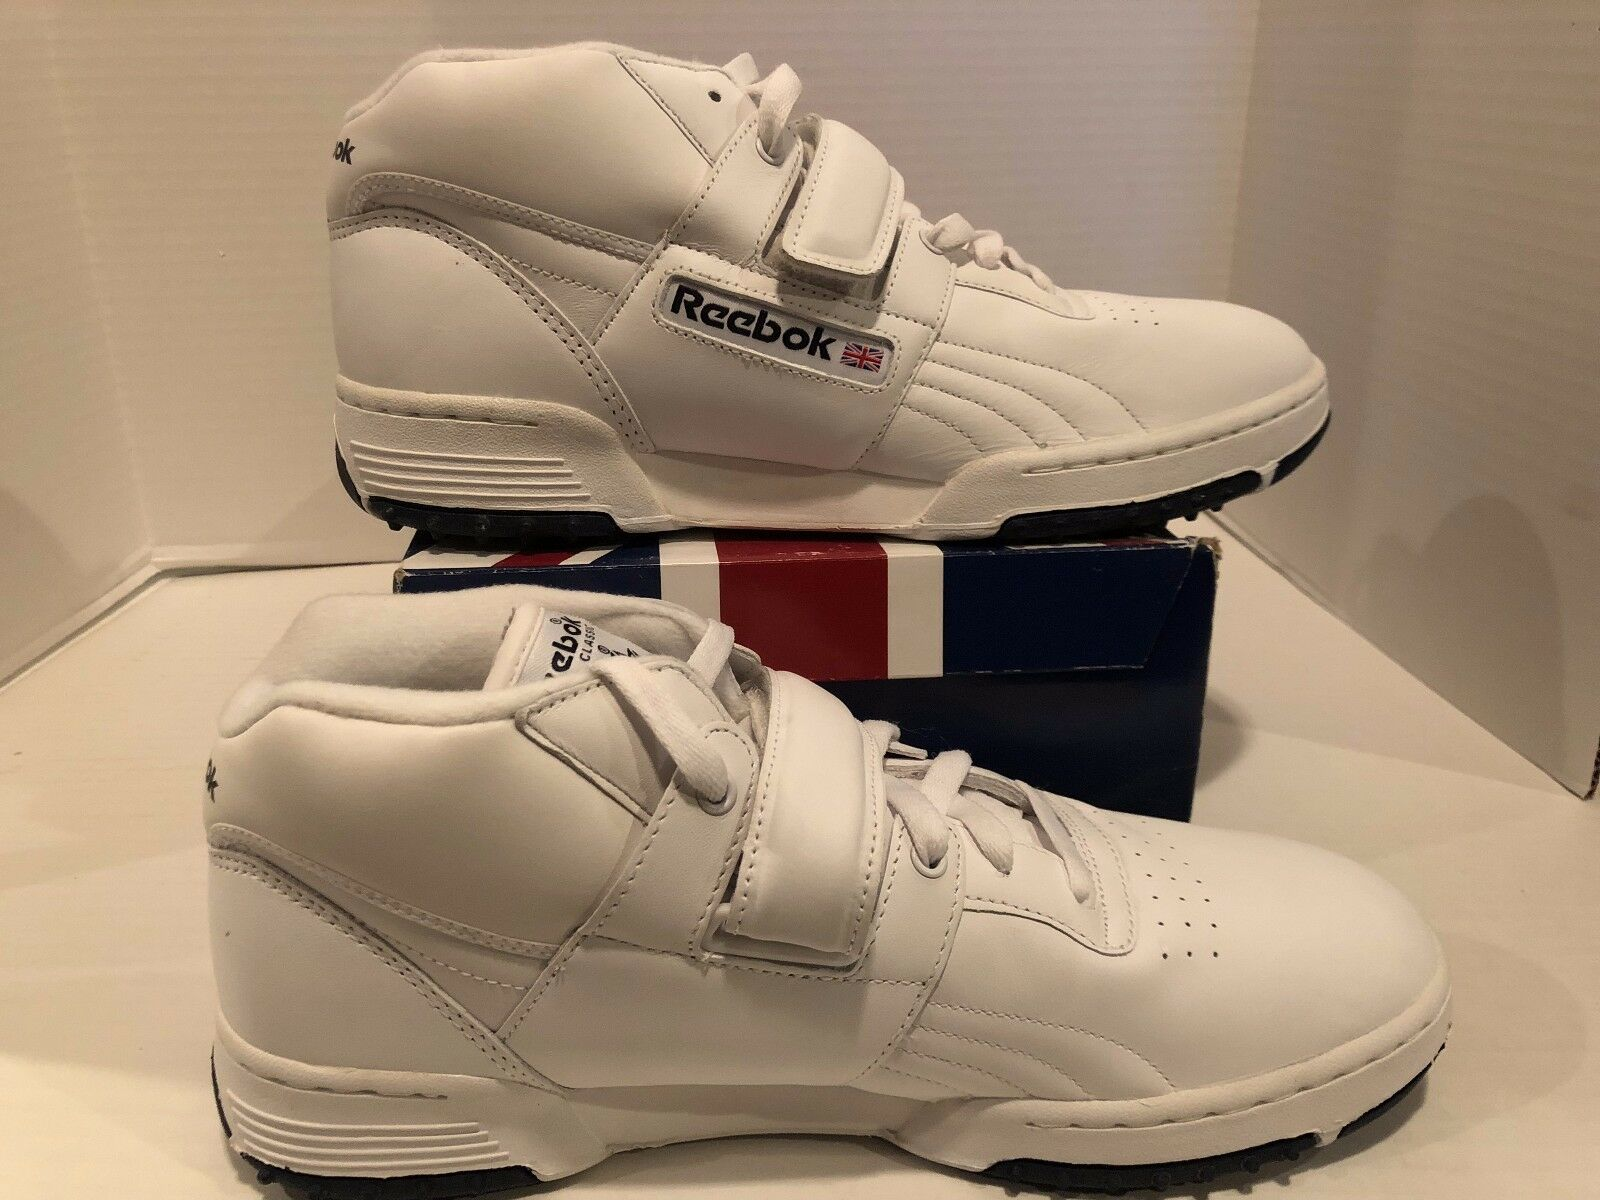 Men's New Reebok Classic W O Mid Strap Turf White Leather shoes